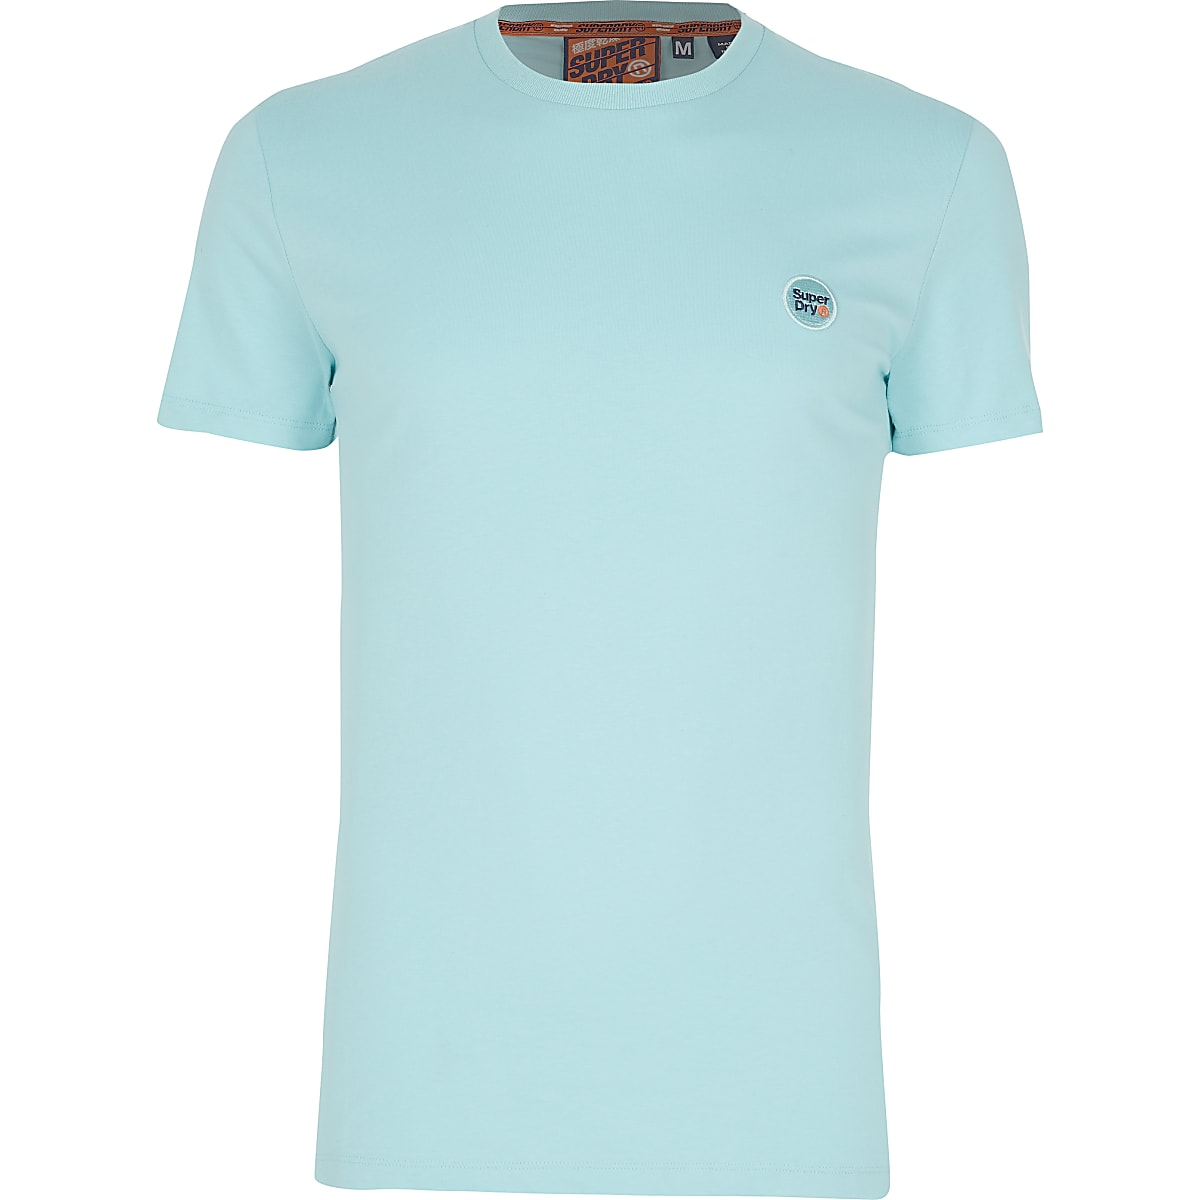 Superdry - Collective - Blauw T-shirt